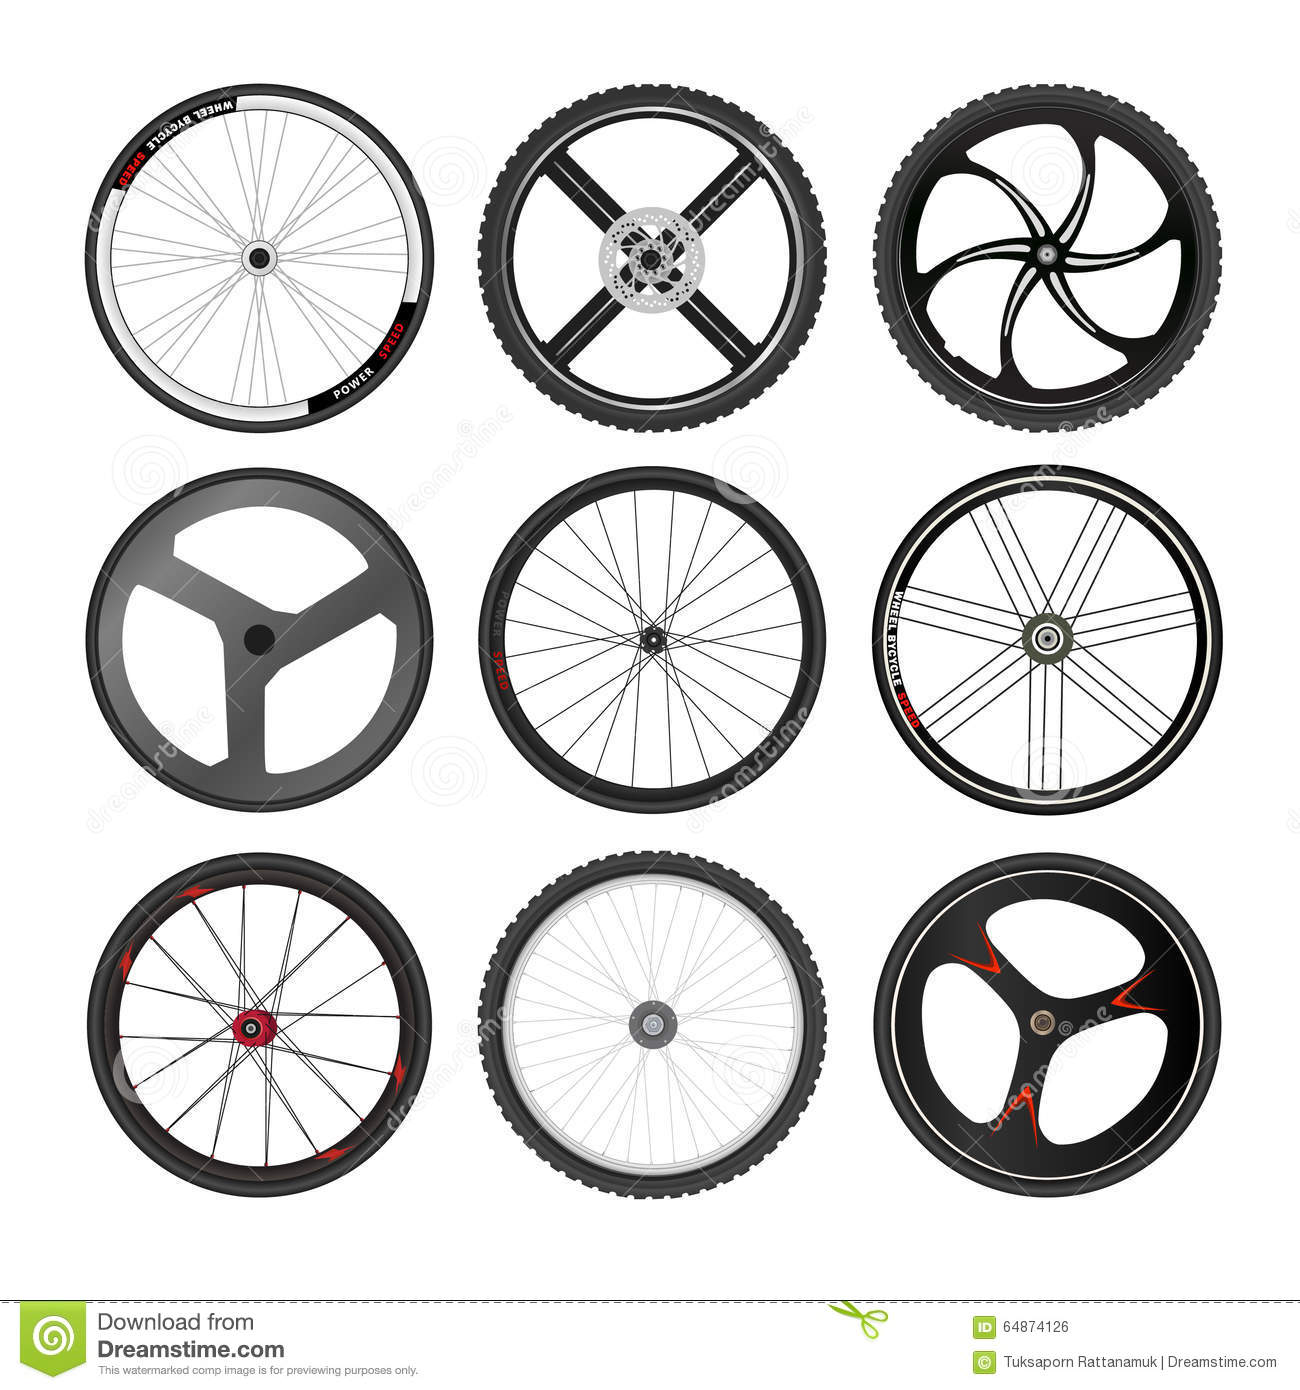 Bicycle Wheel Vector Set Stock Vector Illustration Of Activity 64874126